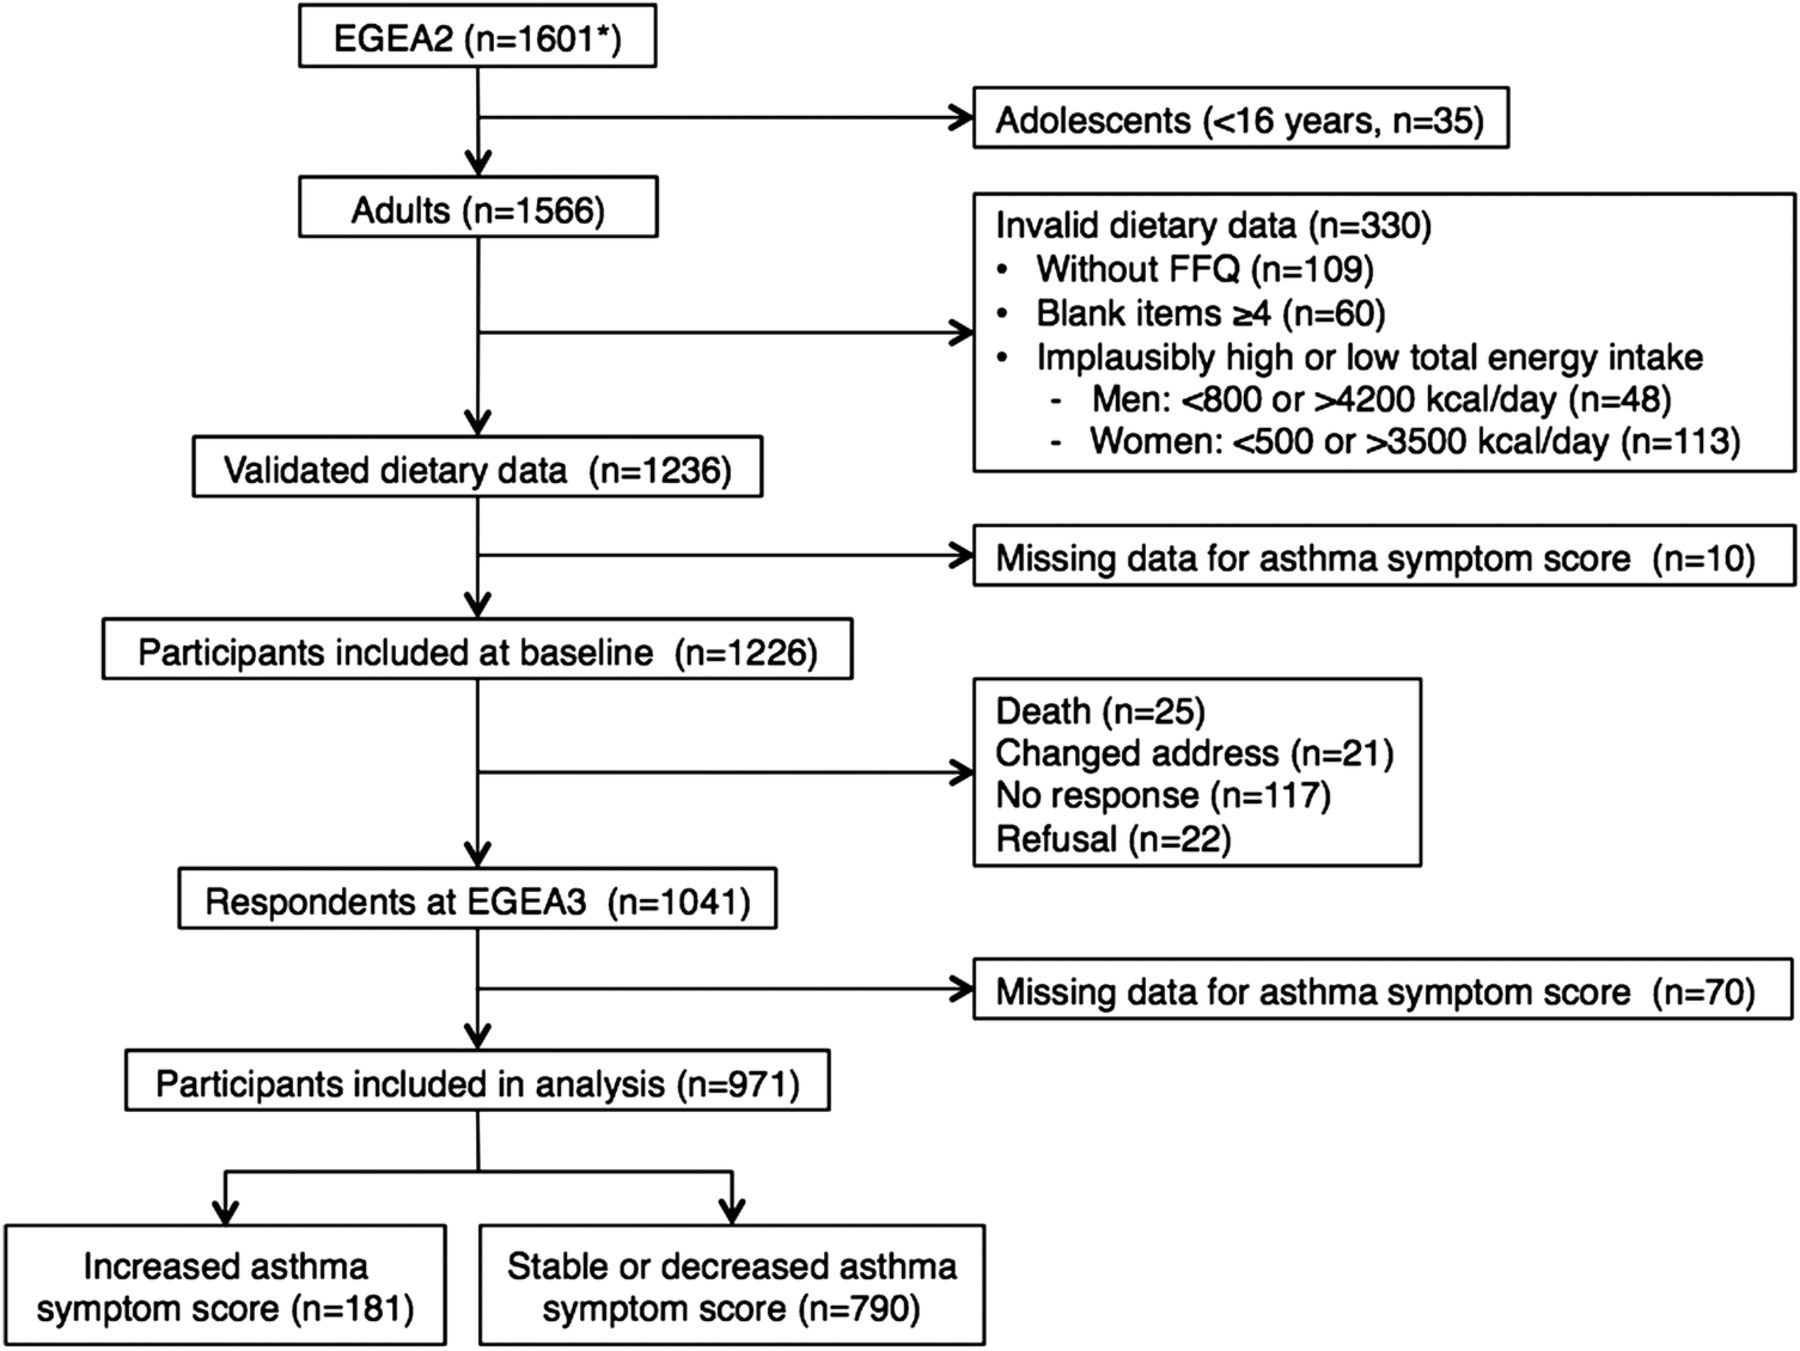 Cured meat intake is associated with worsening asthma symptoms